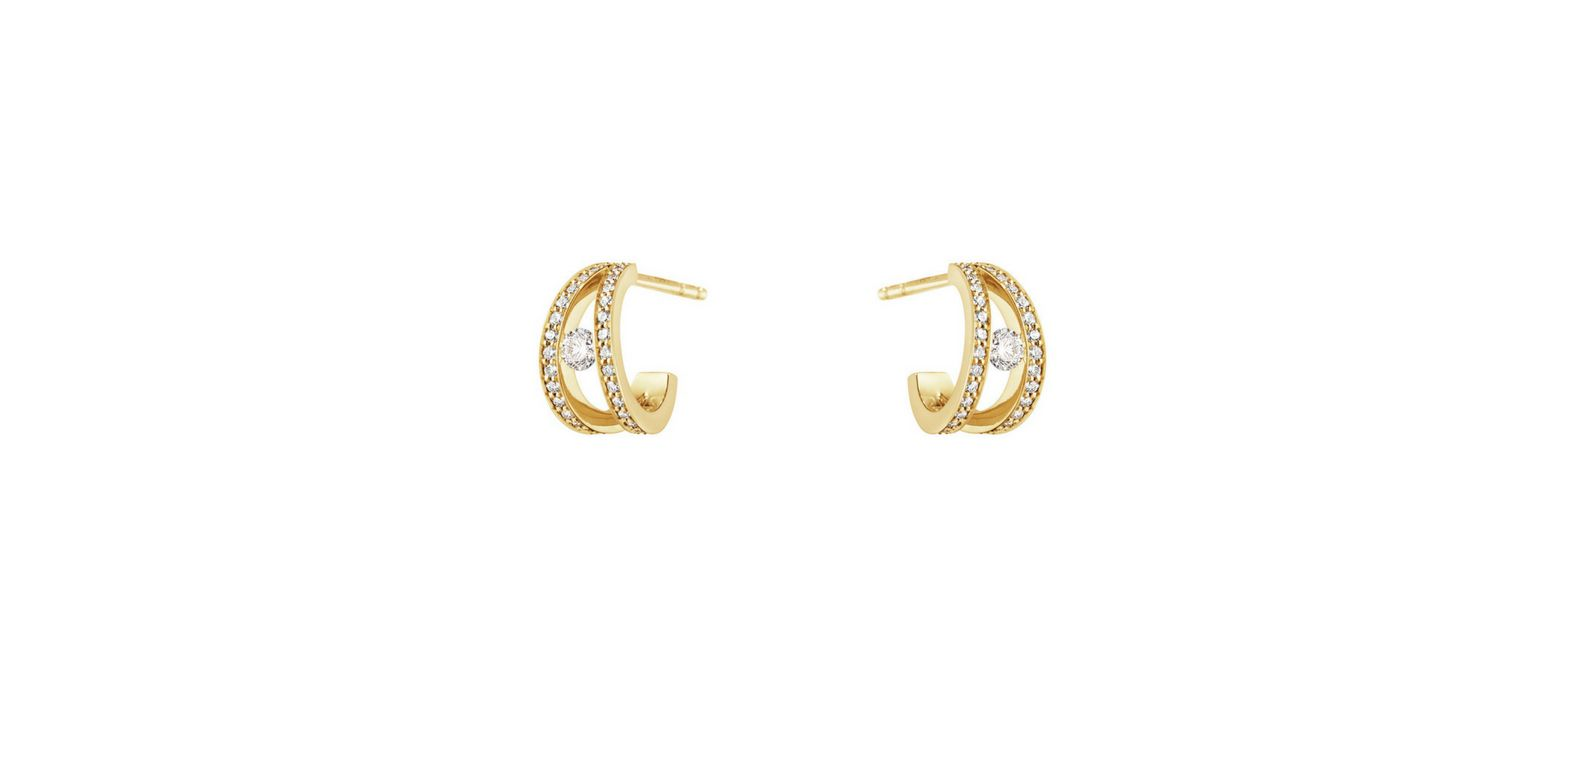 Gold And Diamonds Collide For The Georg Jensen Halo